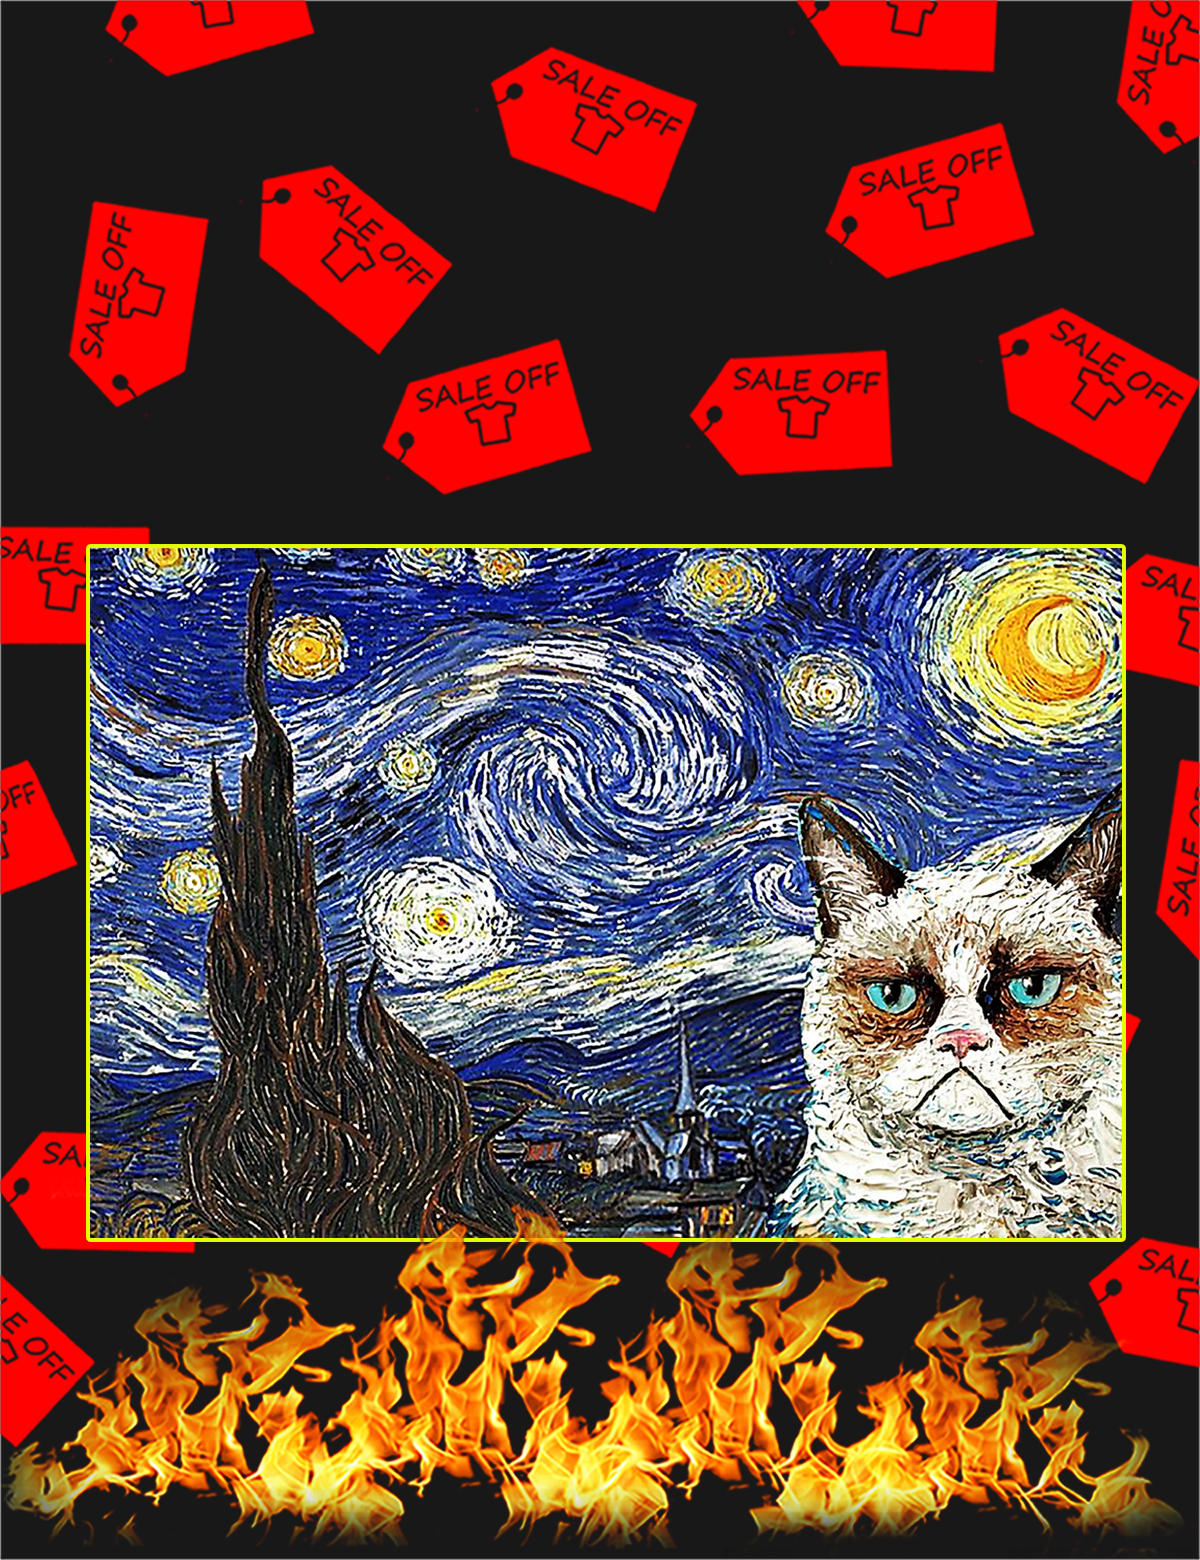 Grumpy cat starry night poster - A4